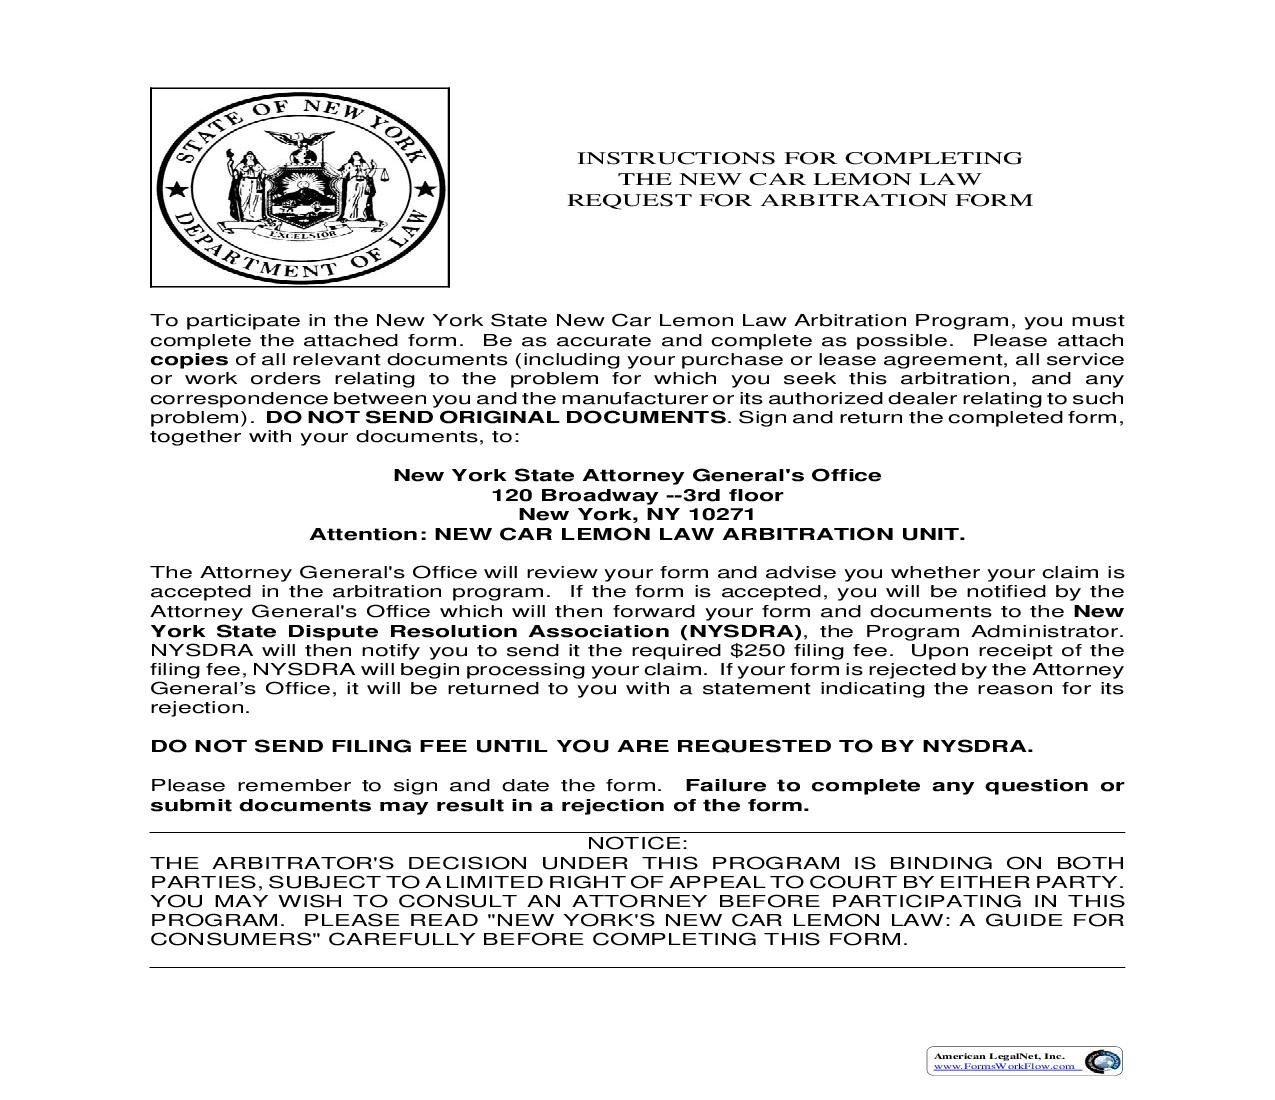 New Car Lemon Law Arbitration Program Request For Arbitration Form (New York) {CNS 006} | Pdf Fpdf Doc Docx | Legal Forms